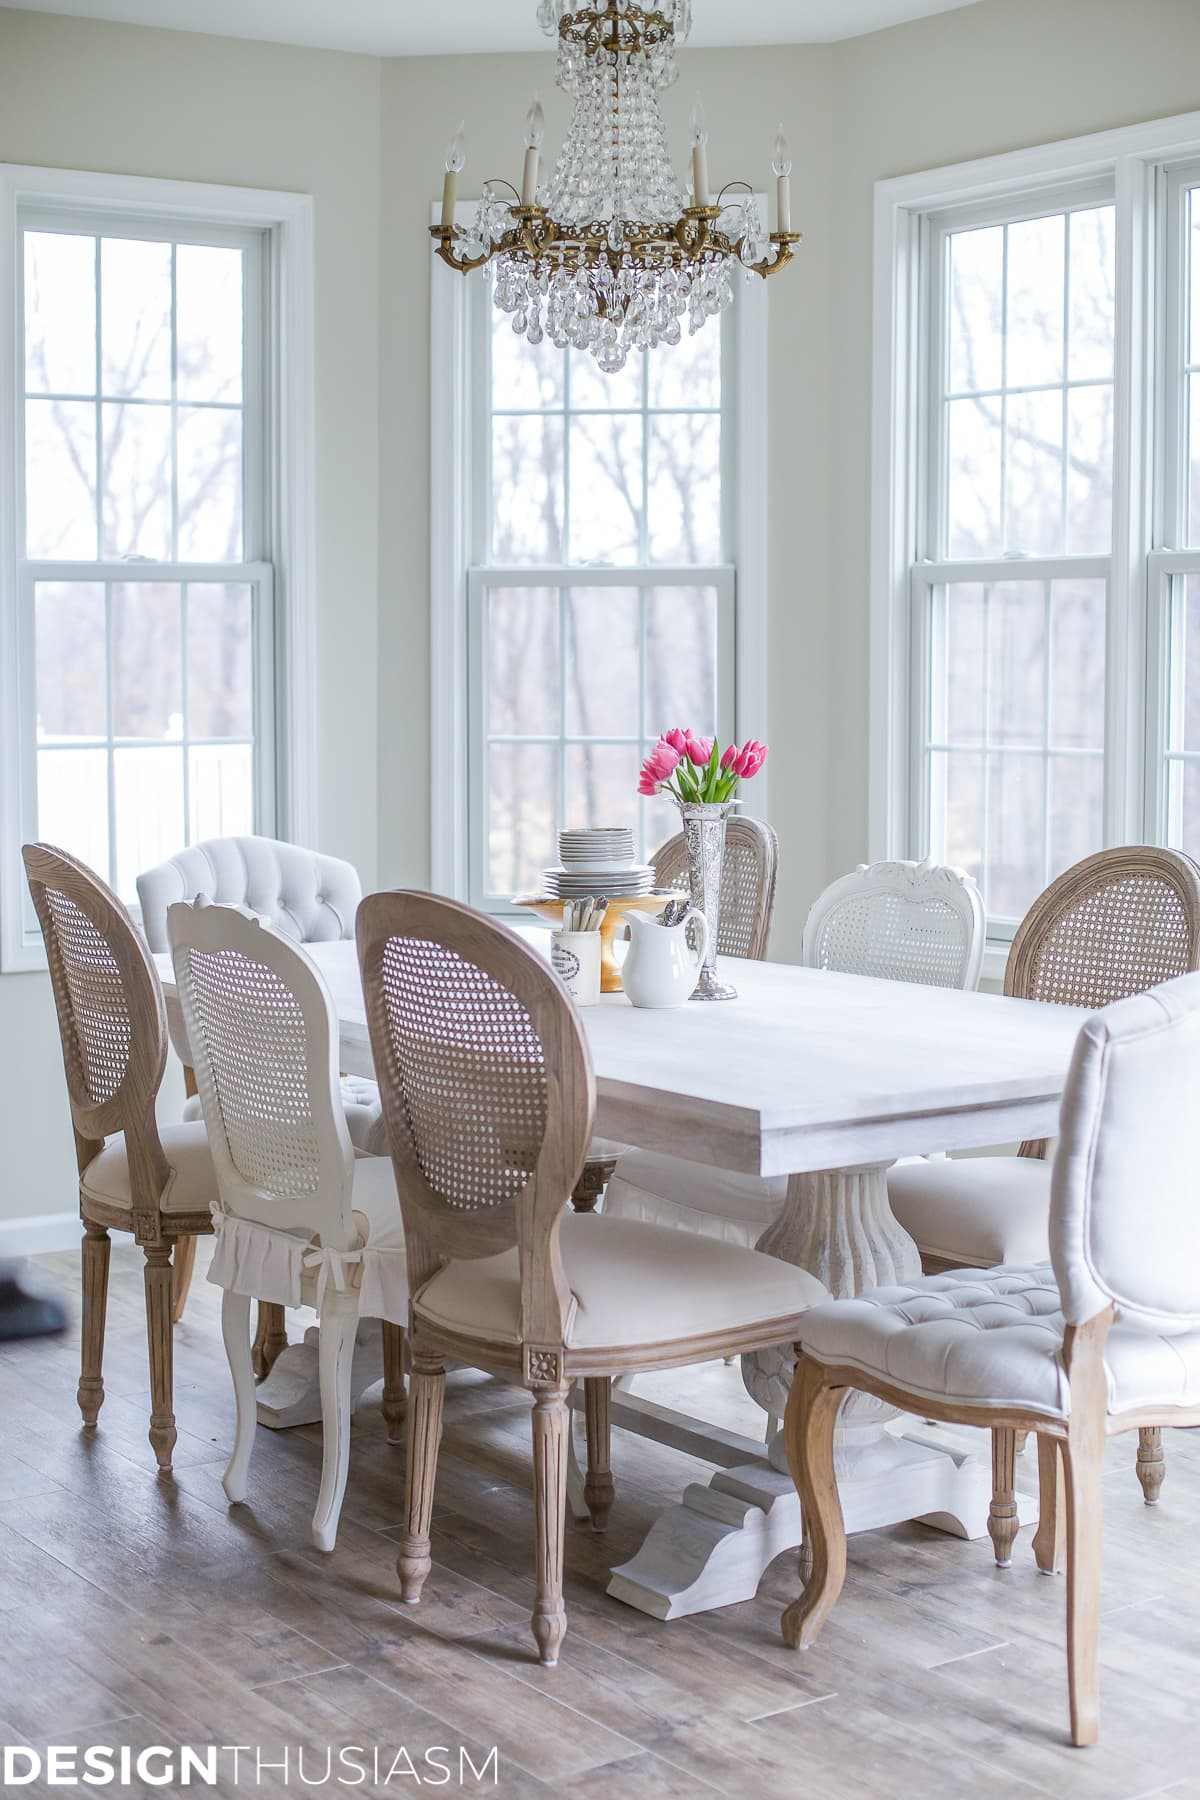 Transforming the Breakfast Room with The Perfect Dining Table | Designthusiasm